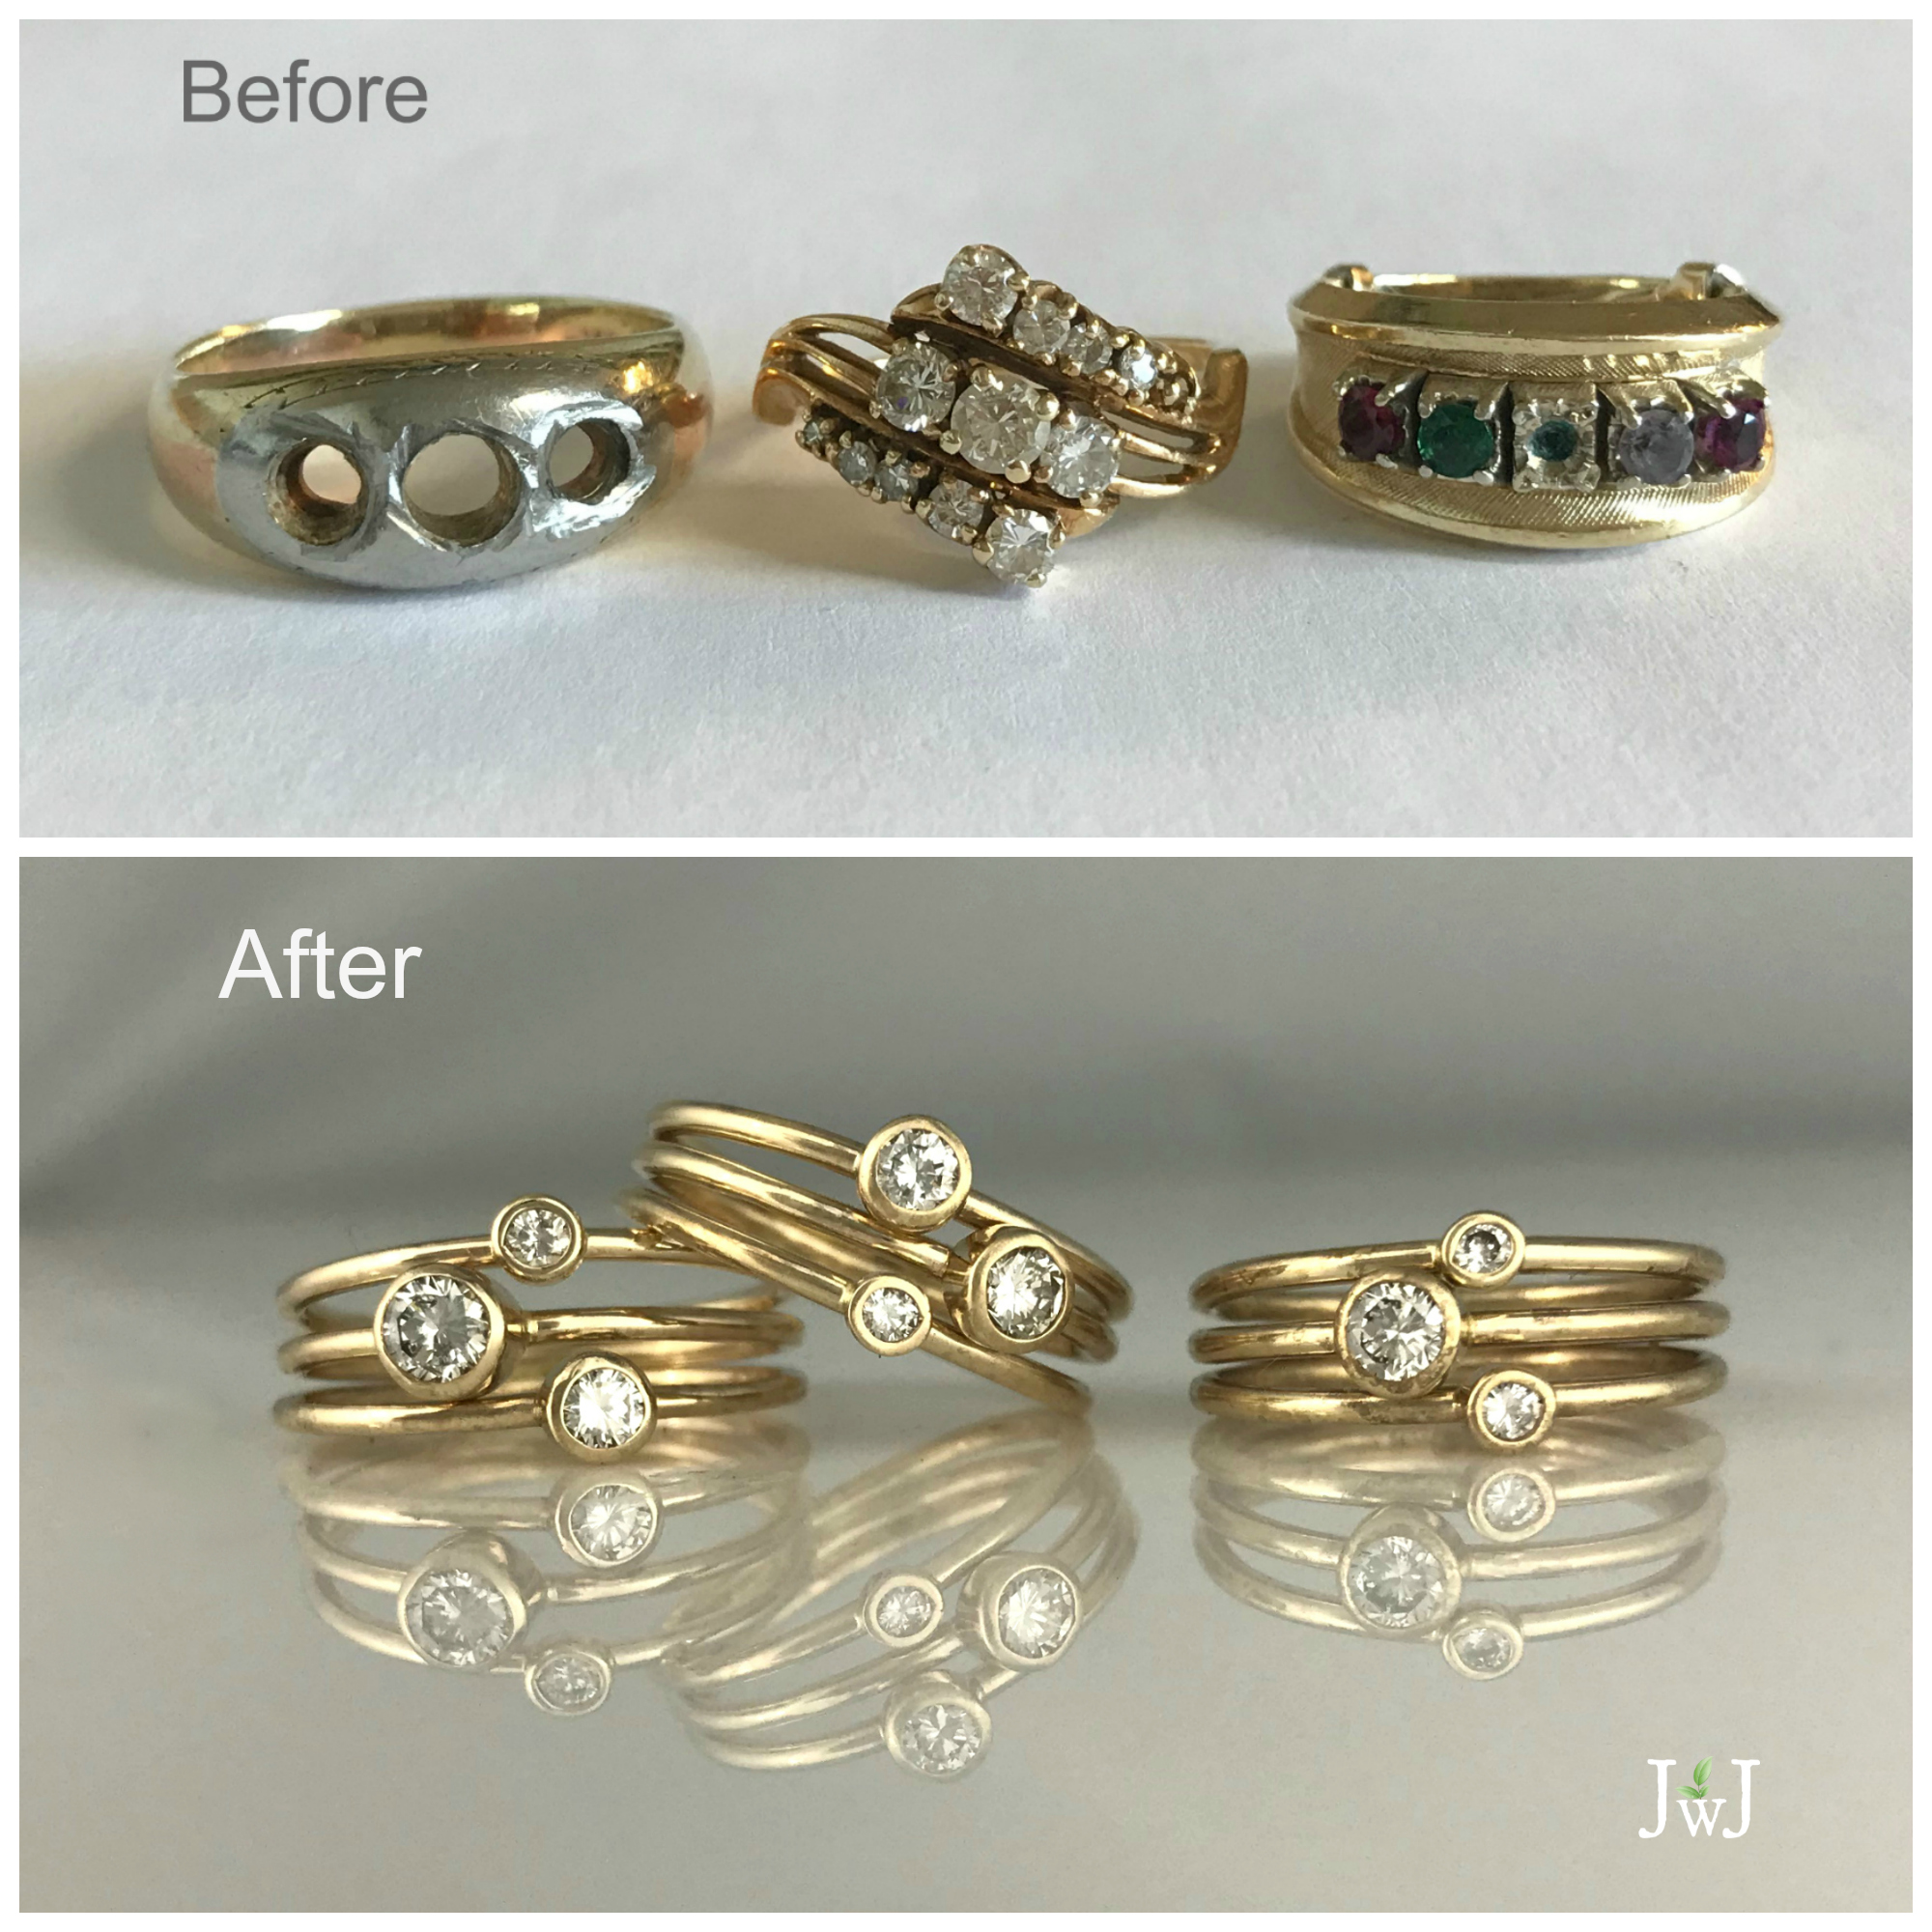 Before and After Repurposed Jewellery